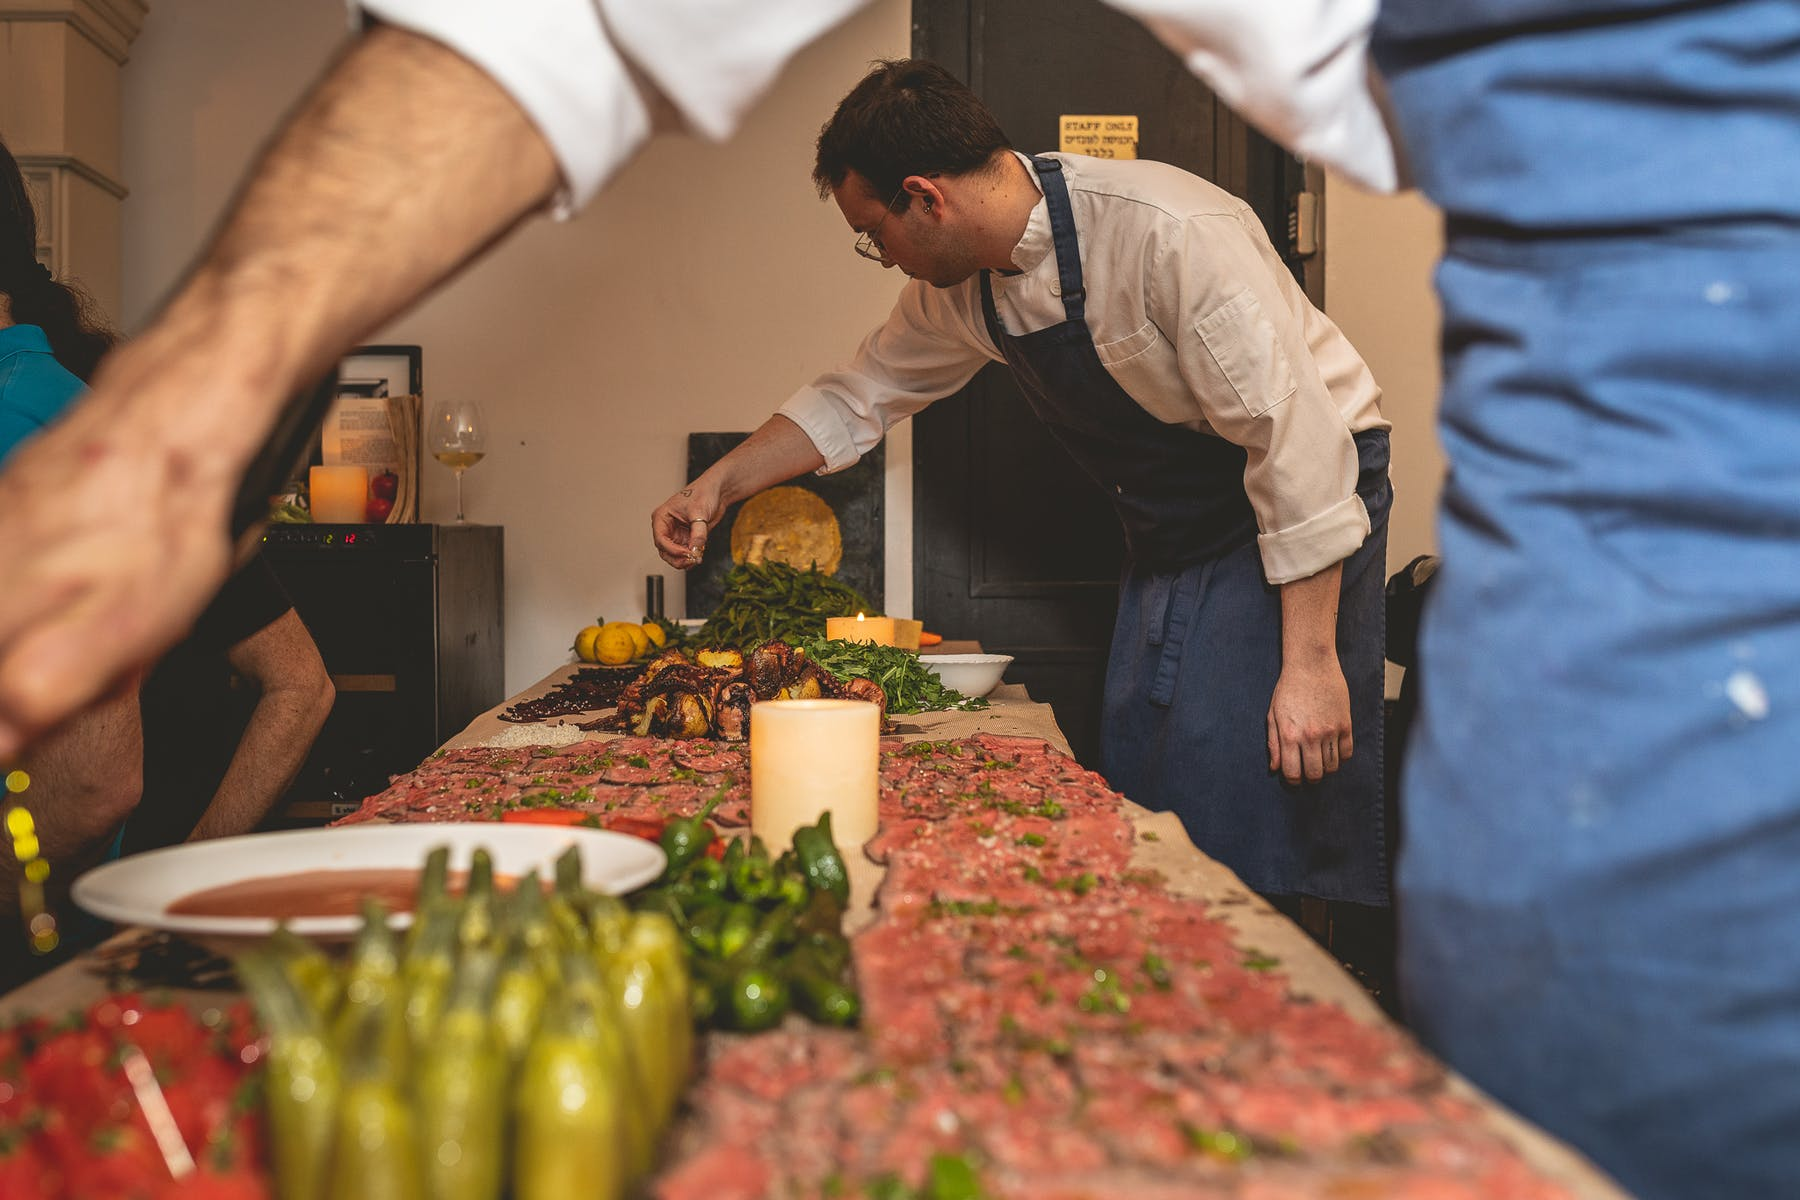 Chefs preparing and serving food for a private event